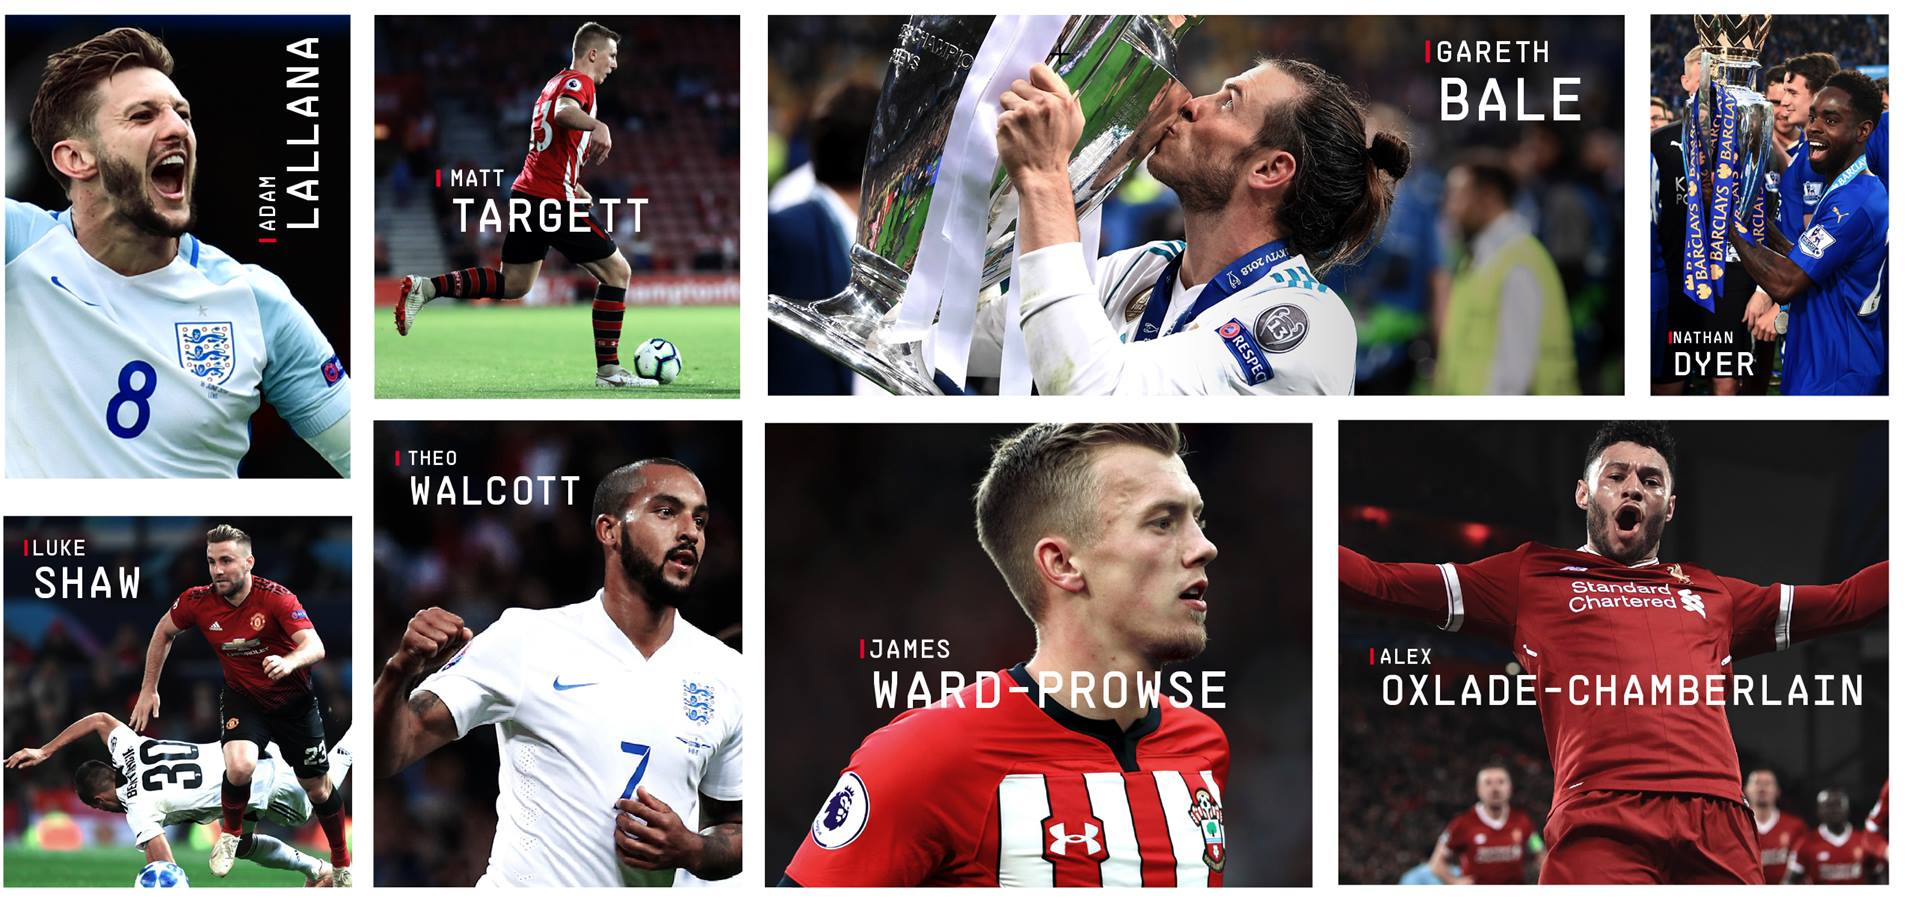 Southampton Fc Official Website Of Saints Latest News Photos And Videos